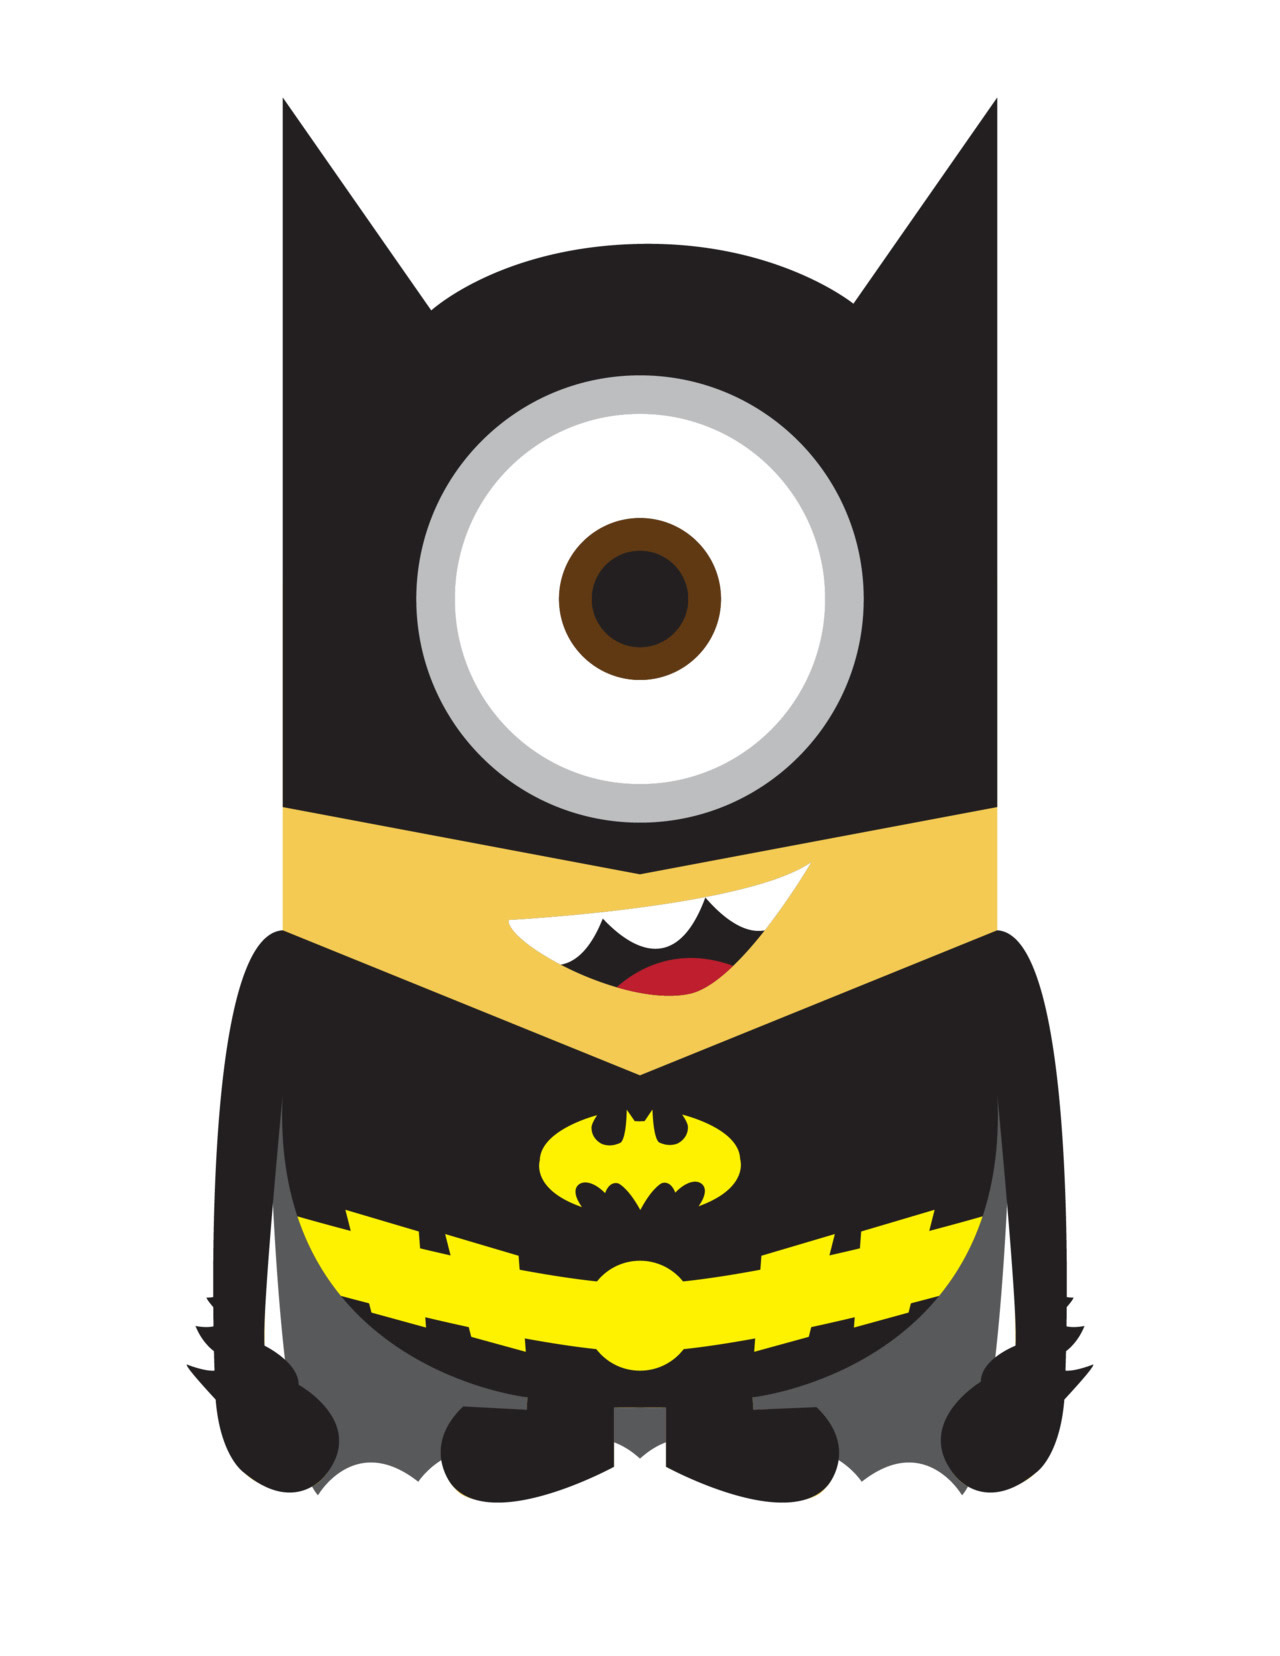 Despicable me 2 minions as adorable superheroes